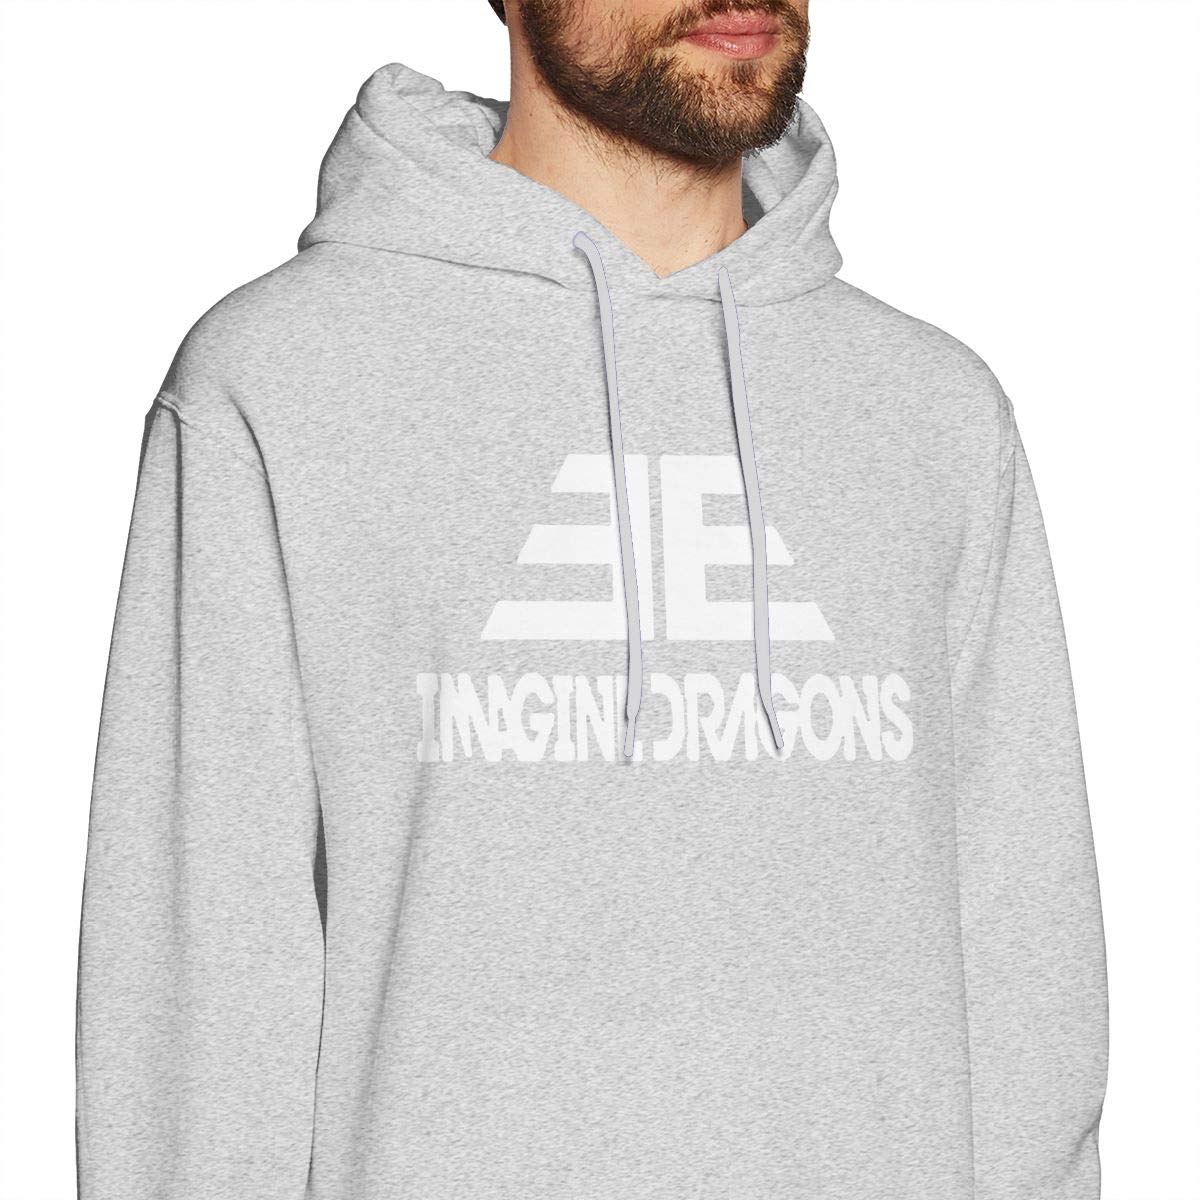 Mens Hooded Sweatshirt Imagine Dragons Personality Street Trend Creation Gray